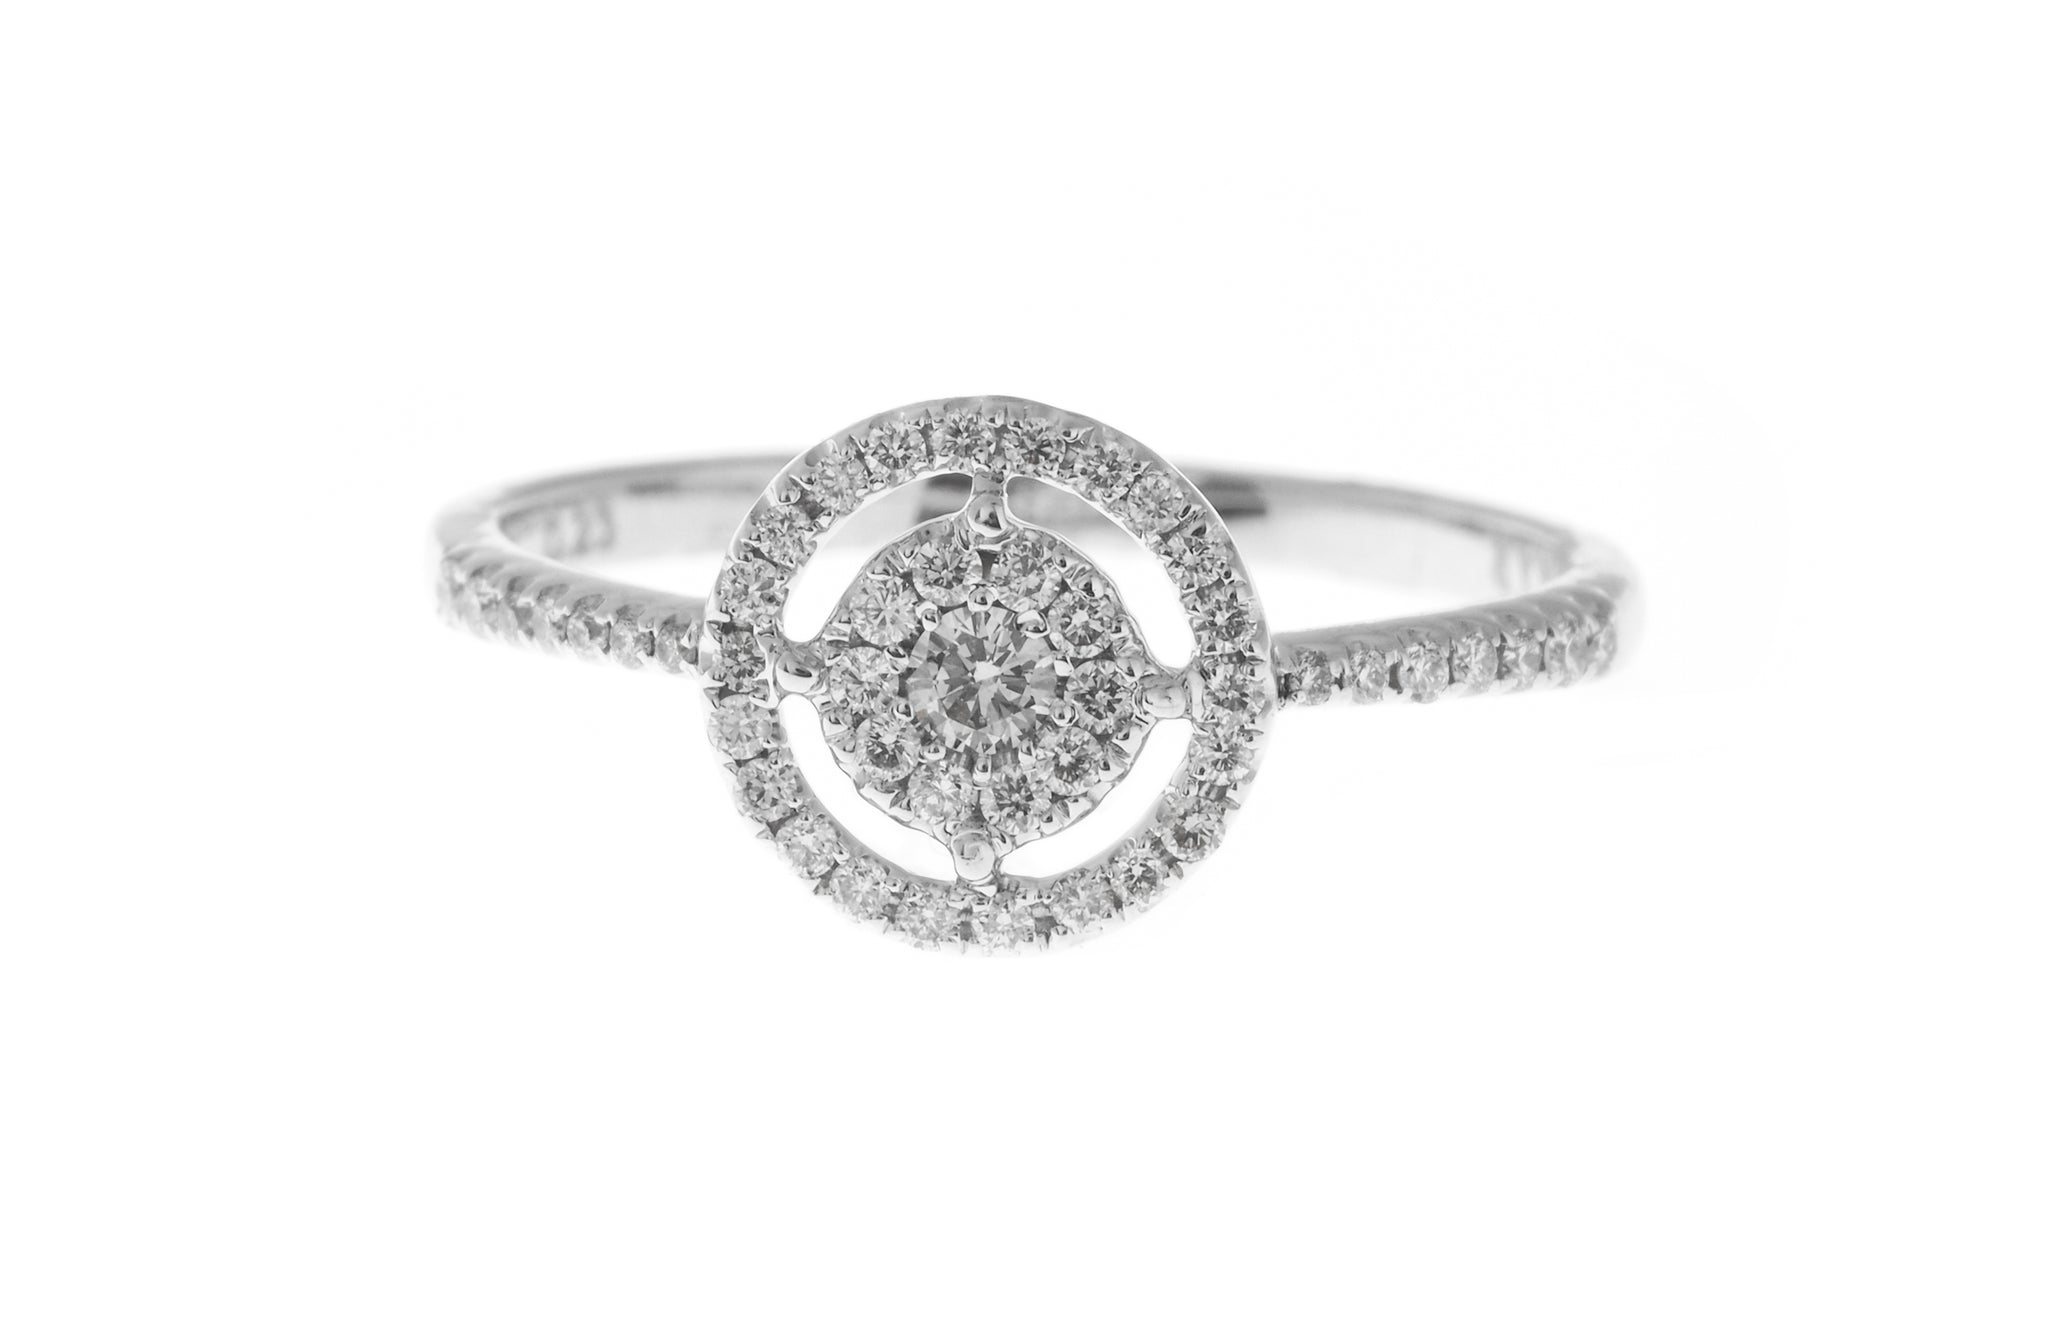 18ct White Gold Diamond Cluster Dress Ring (MCS2825)